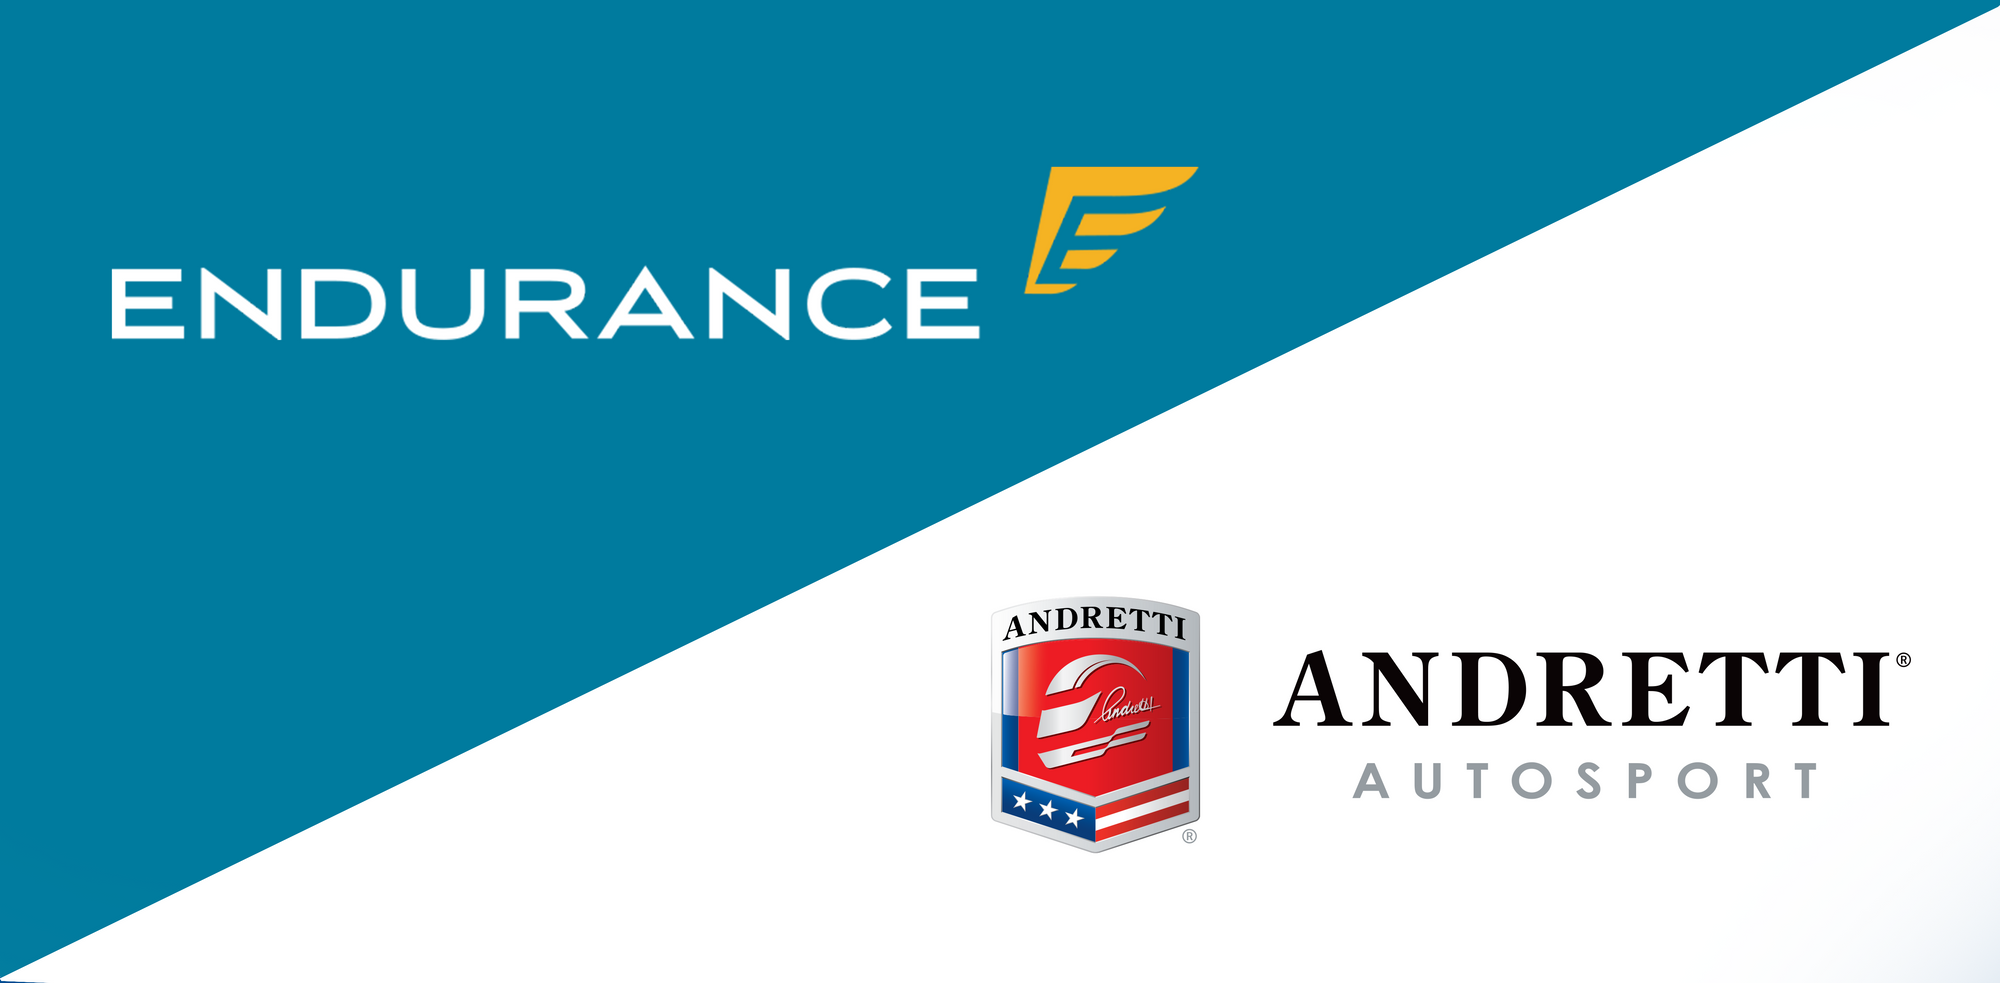 Endurance and Andretti Partnership